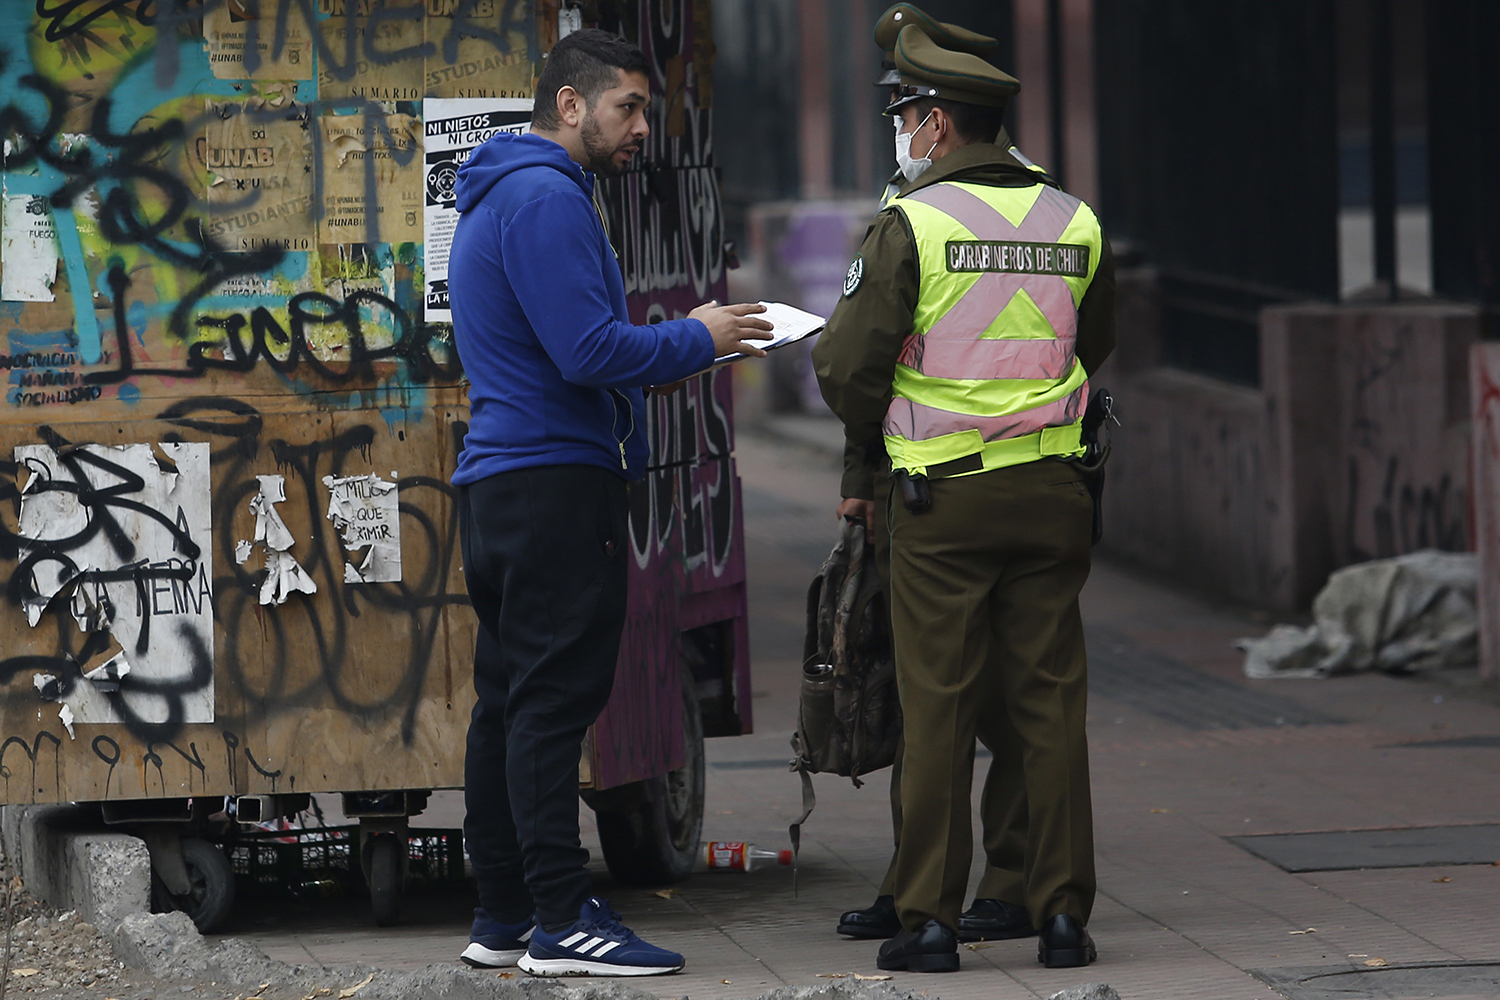 Police officers check the papers of a man before accessing the quarantine area during the first day of the lockdown in seven communes of Santiago, Chile, on March 27.